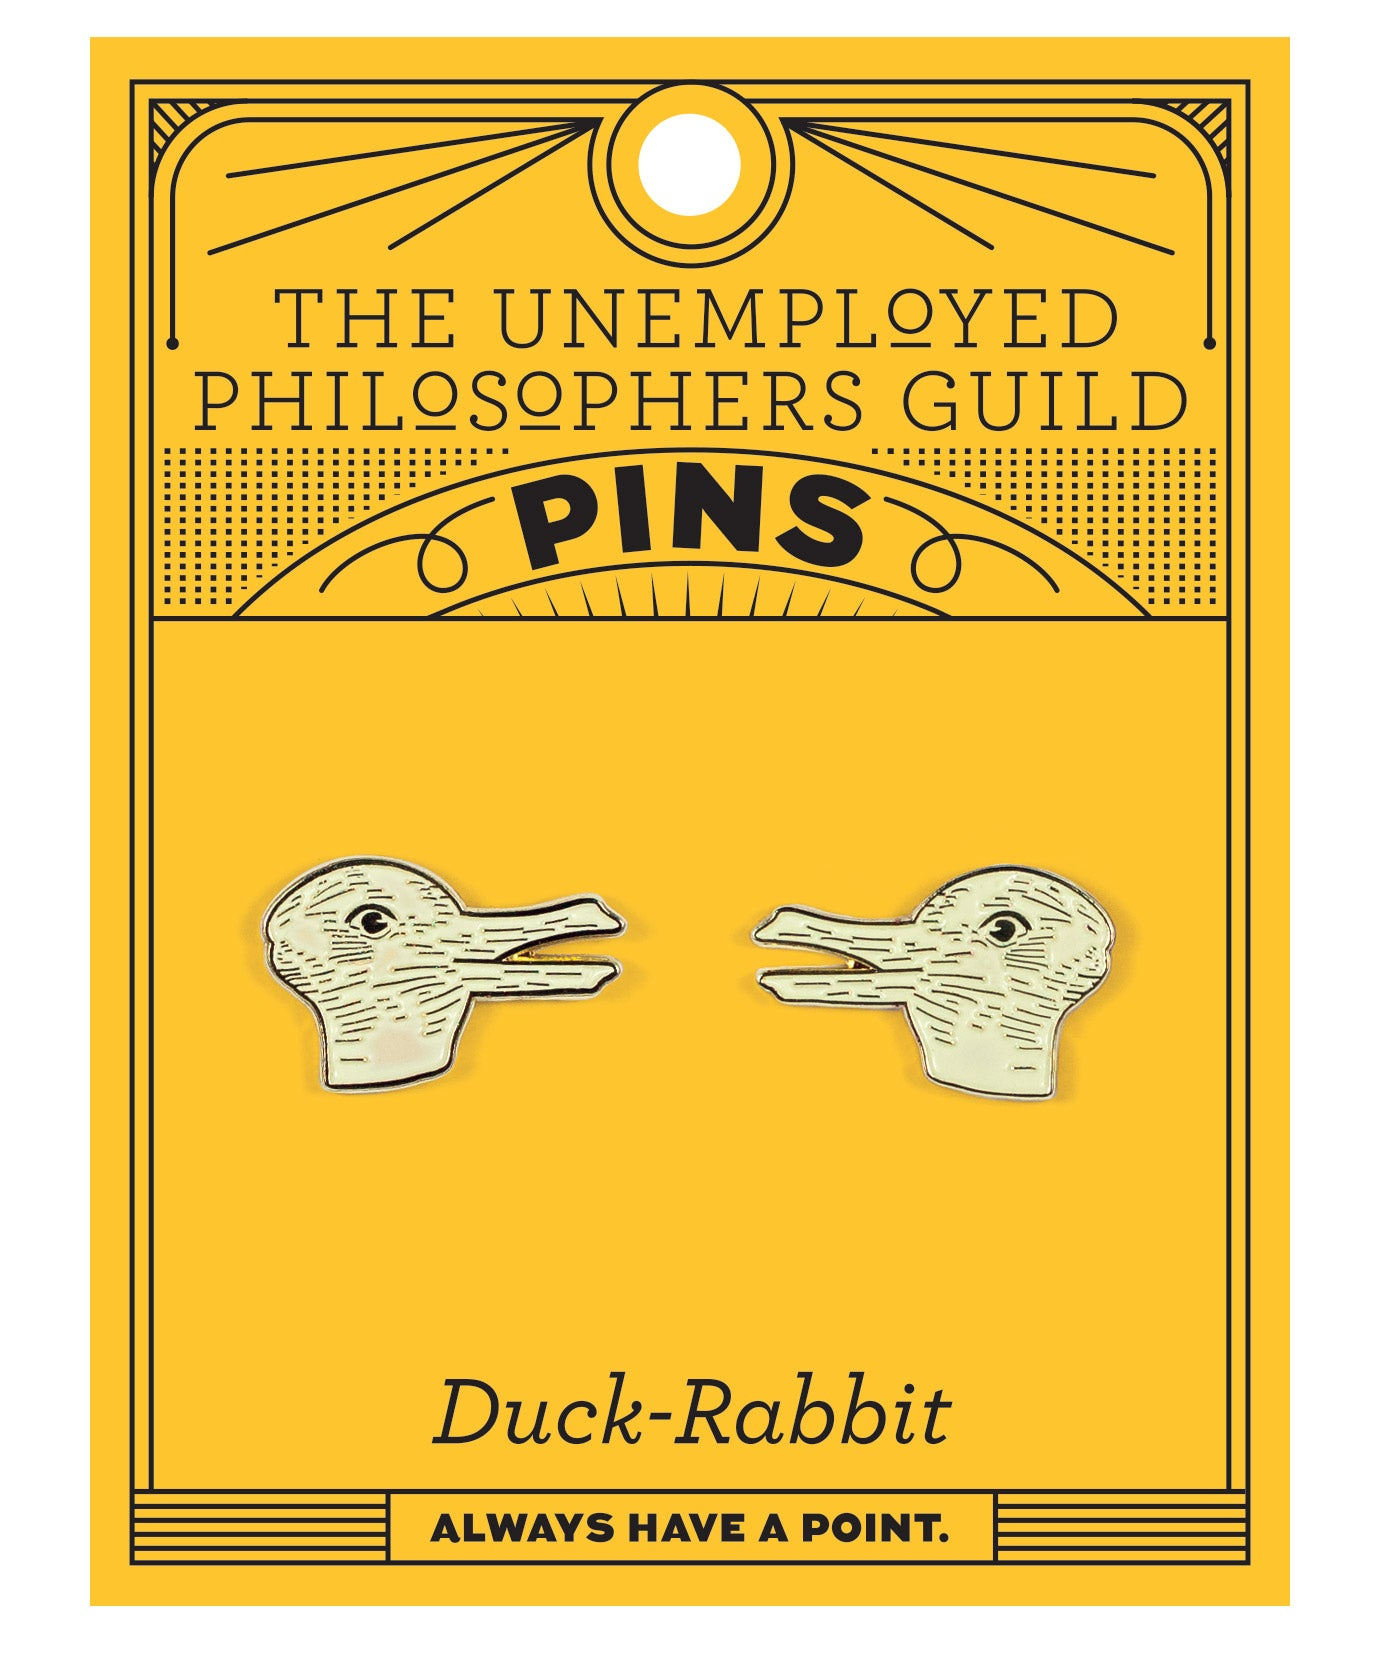 Duck Rabbit Pins - The Unemployed Philosophers Guild